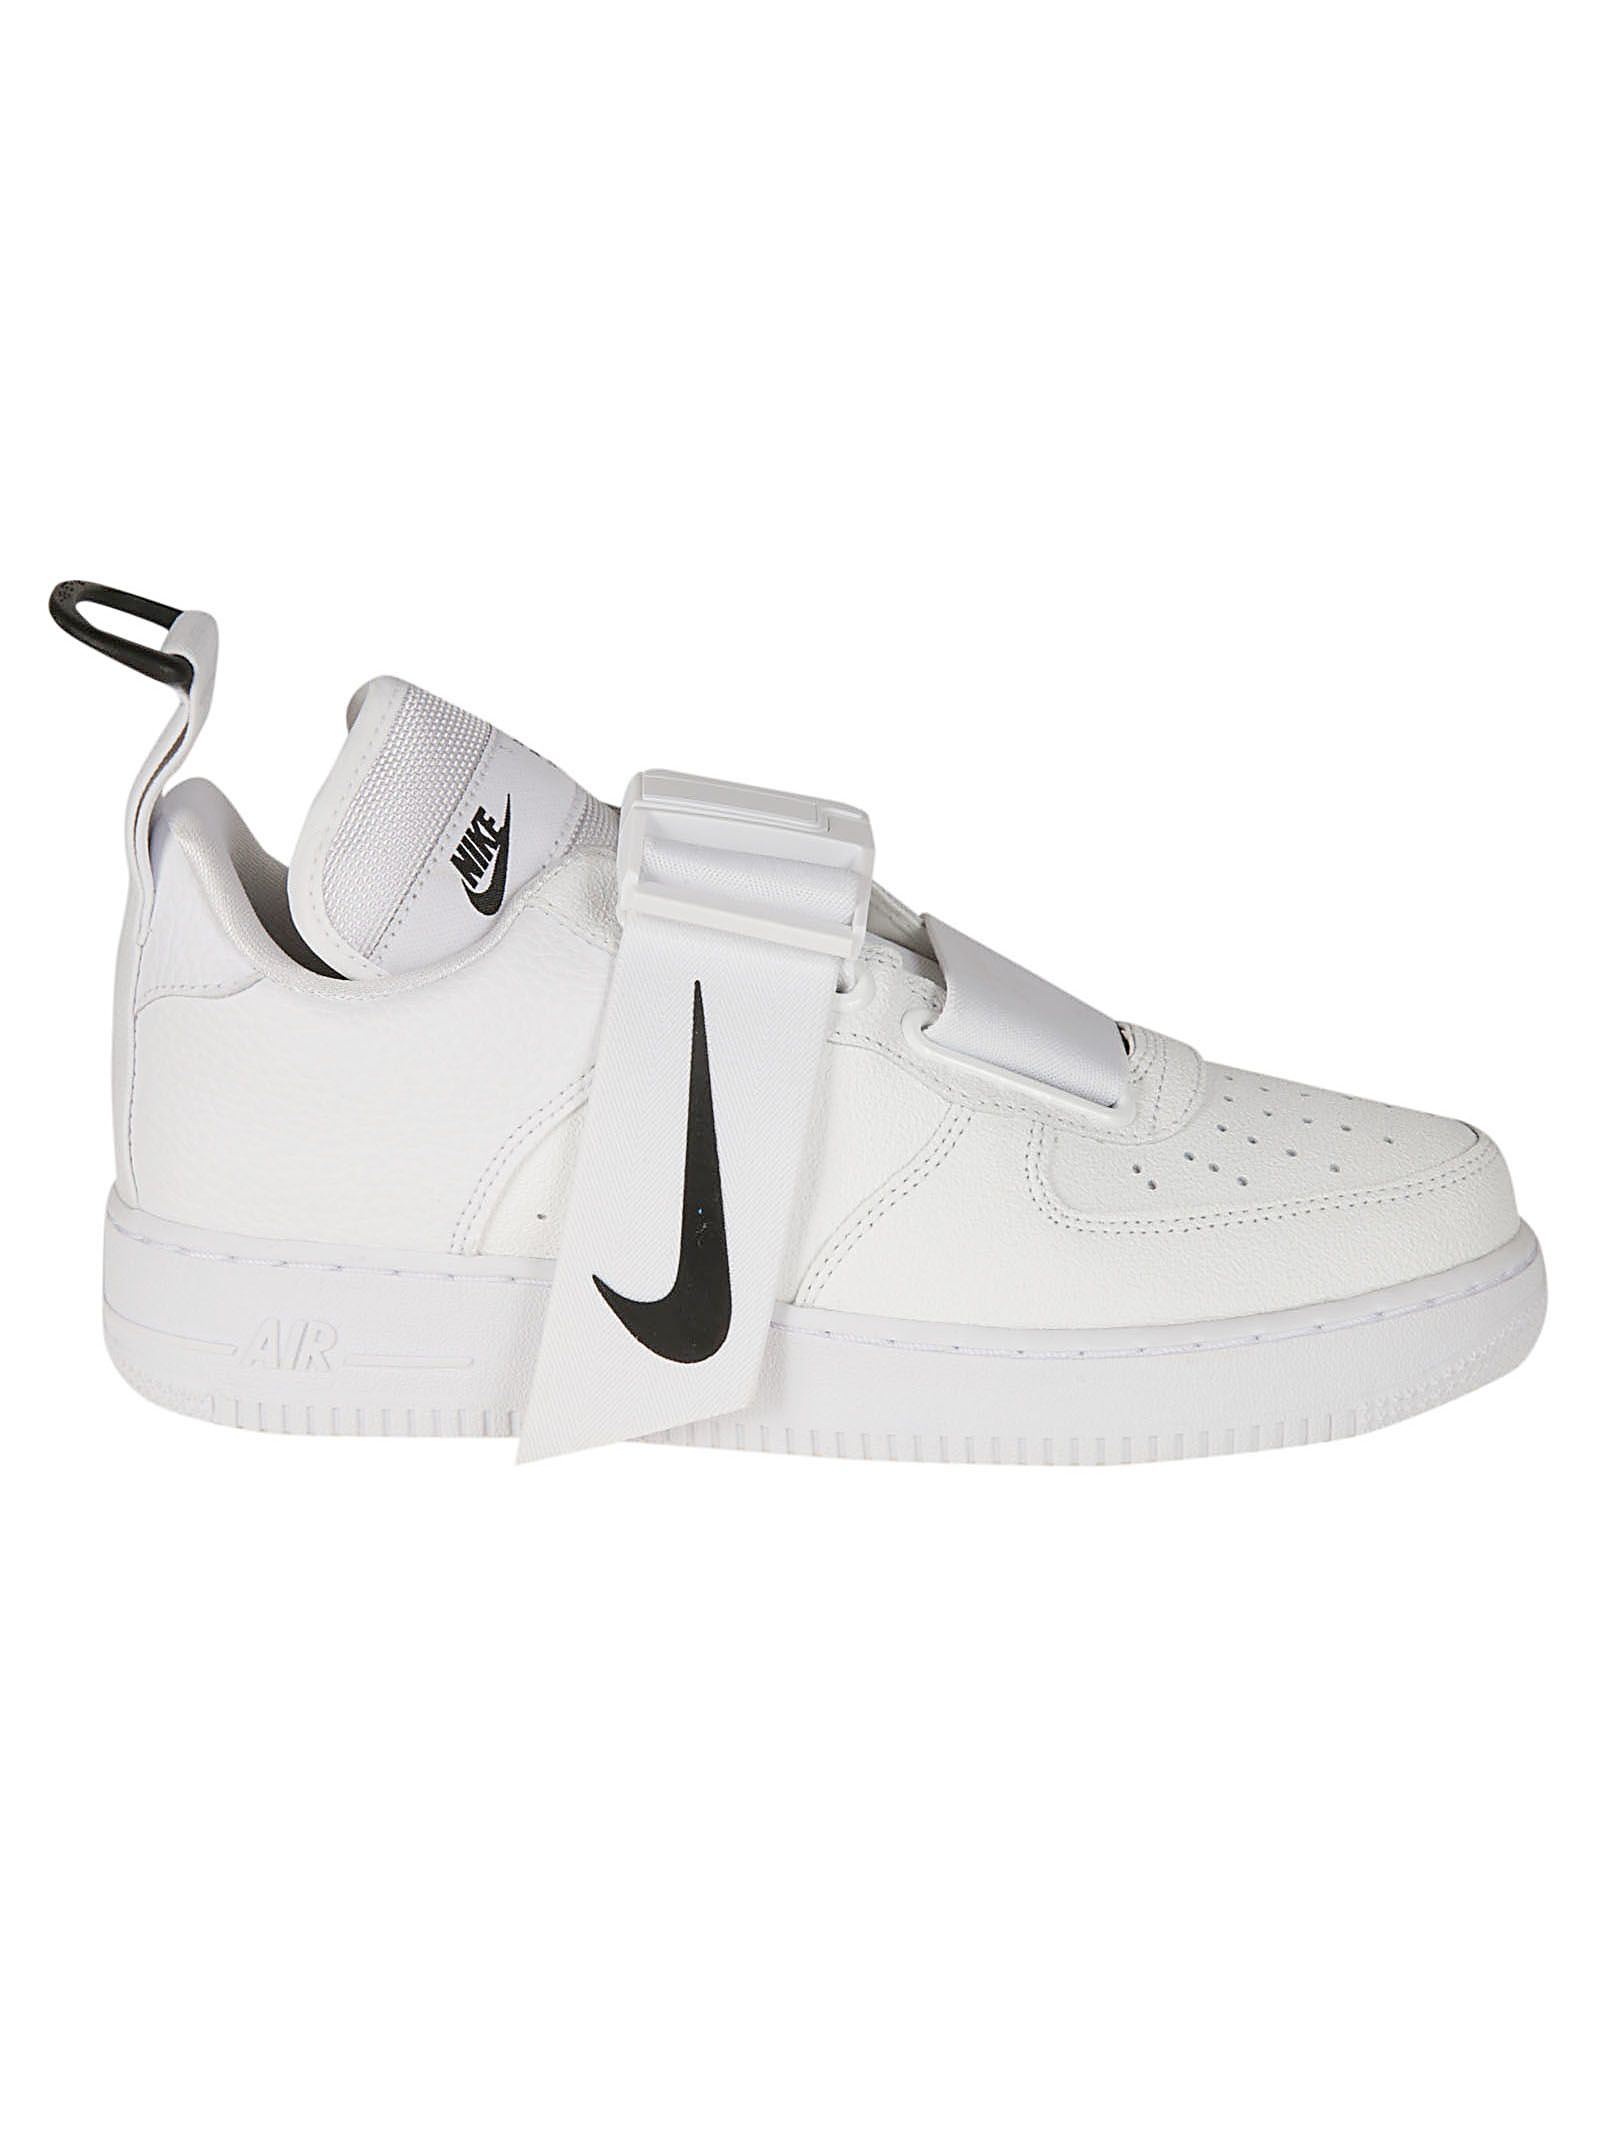 f45f2dc72137ab Nike Nike Adjustable Strap Sneakers - White - 10914416